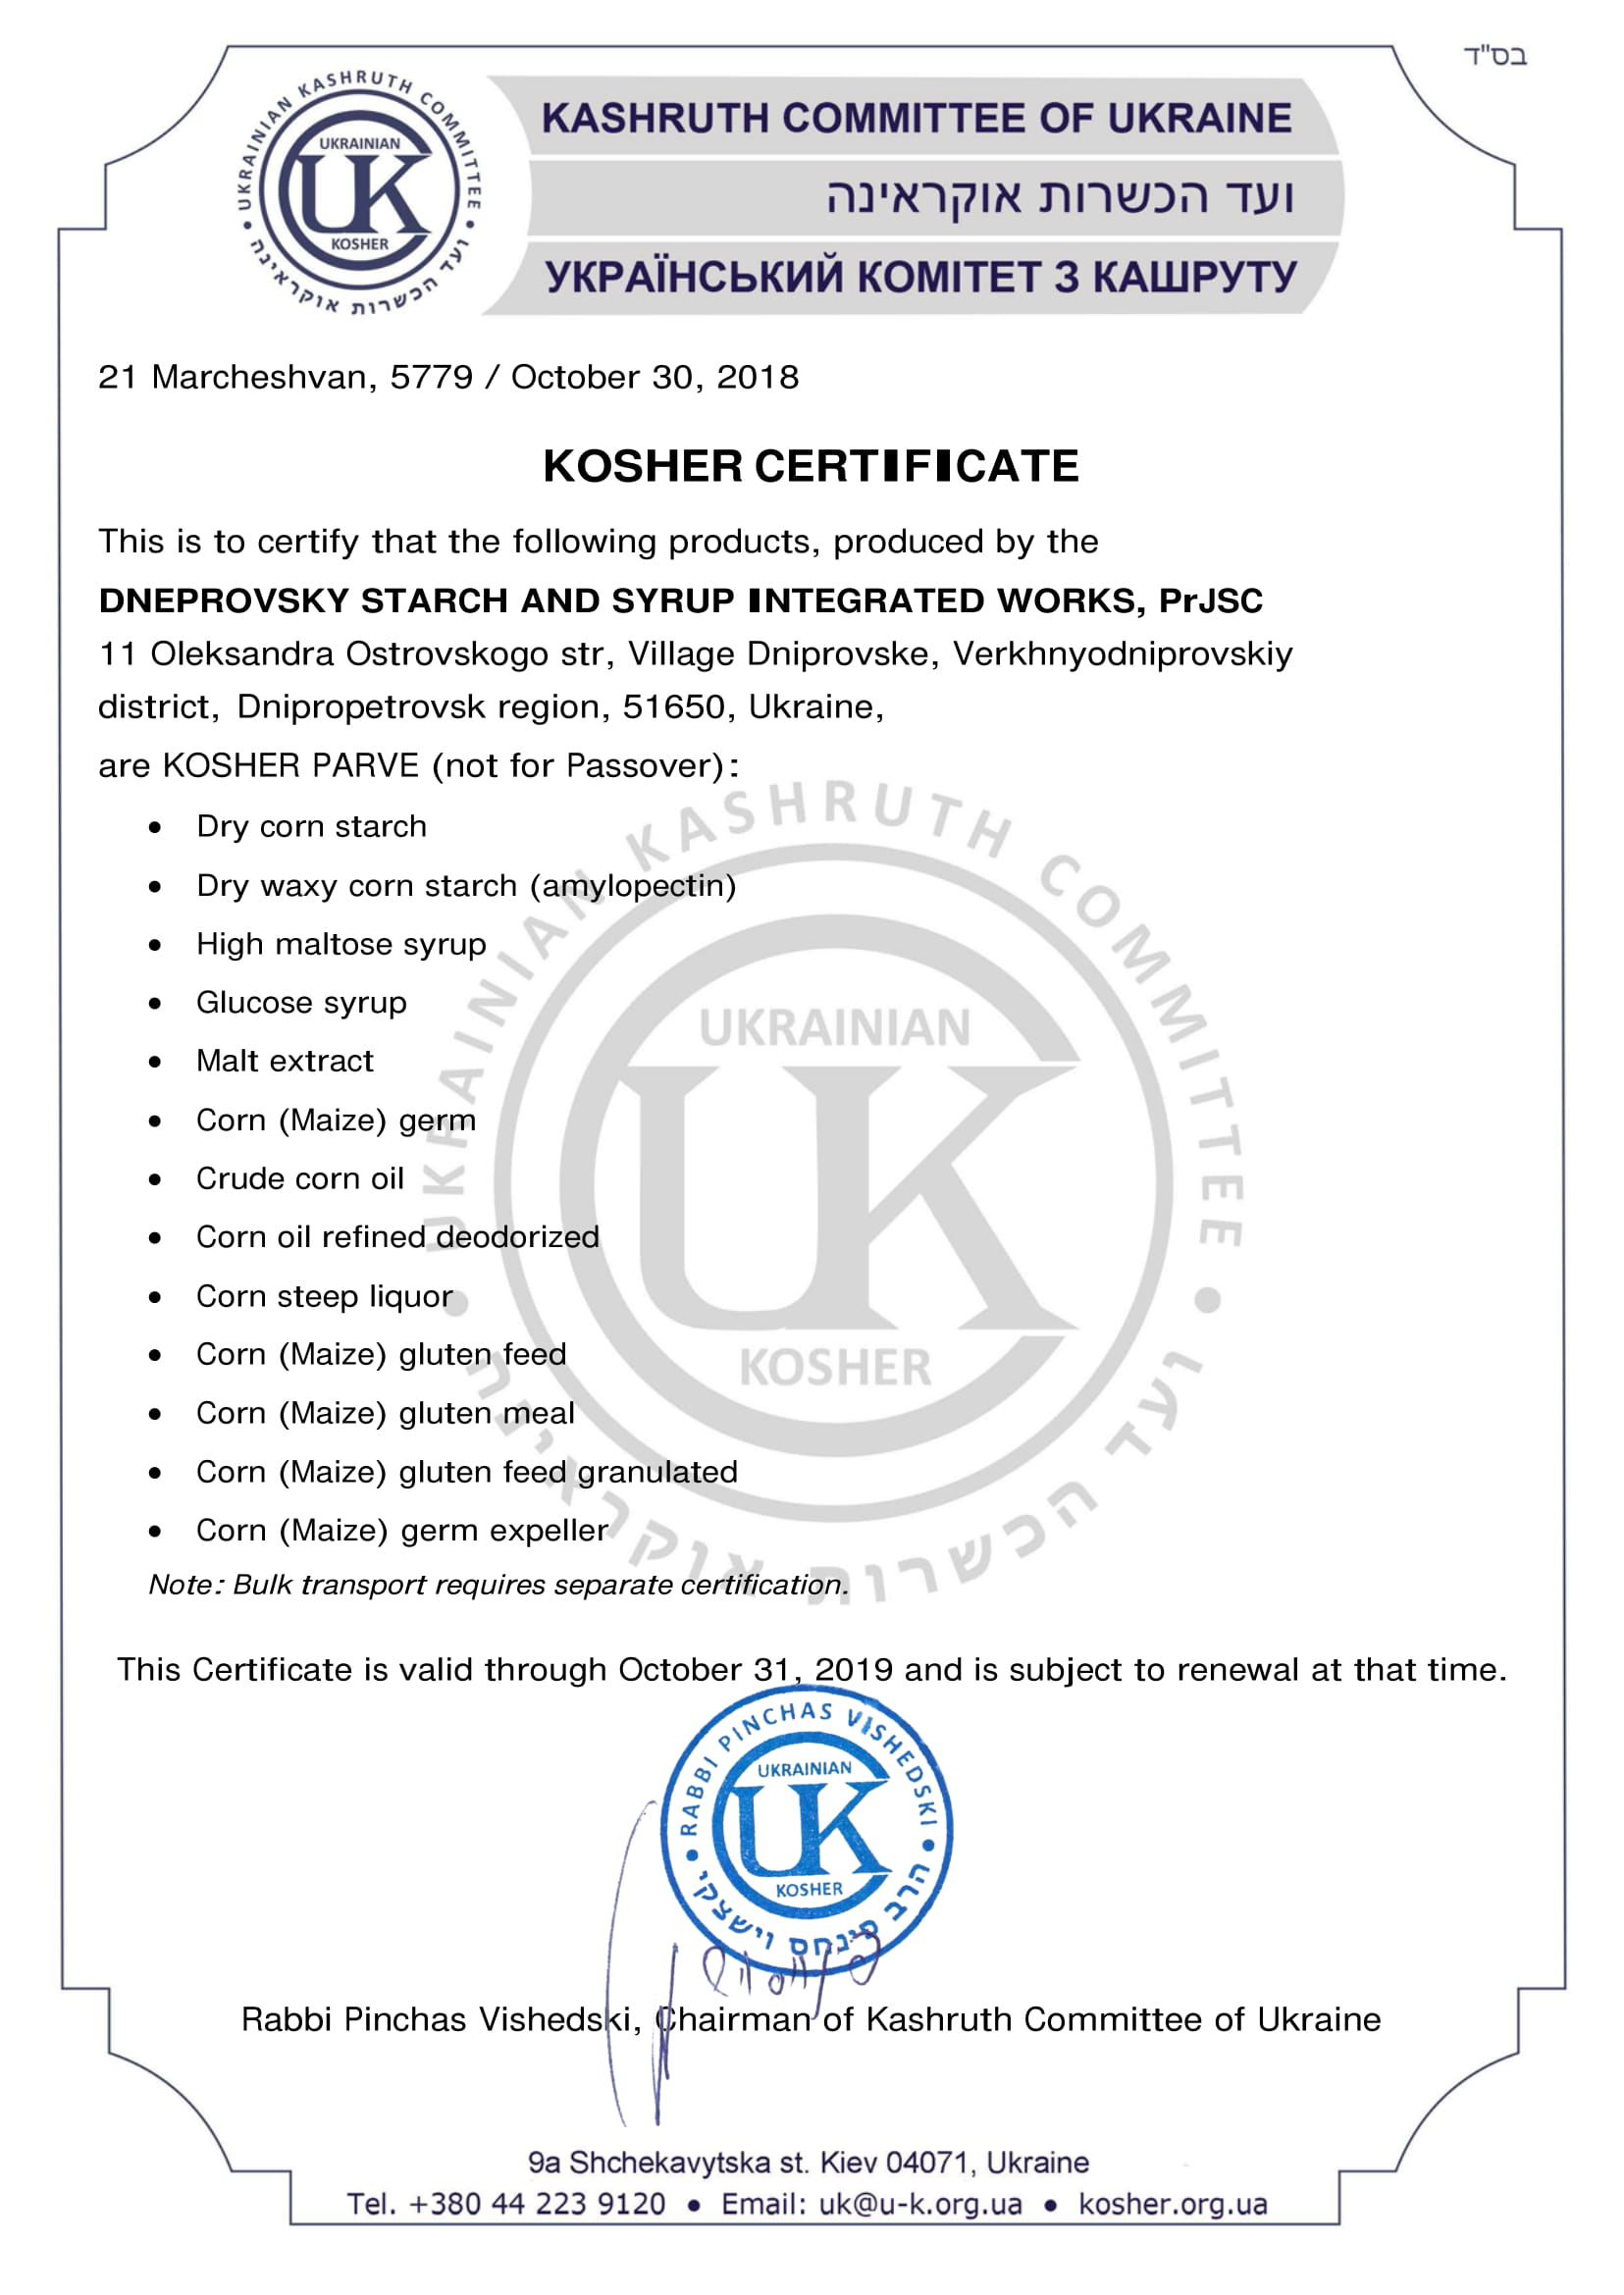 Kosher Certificate PrJSC Dneprovsky starch and syrups integrated works